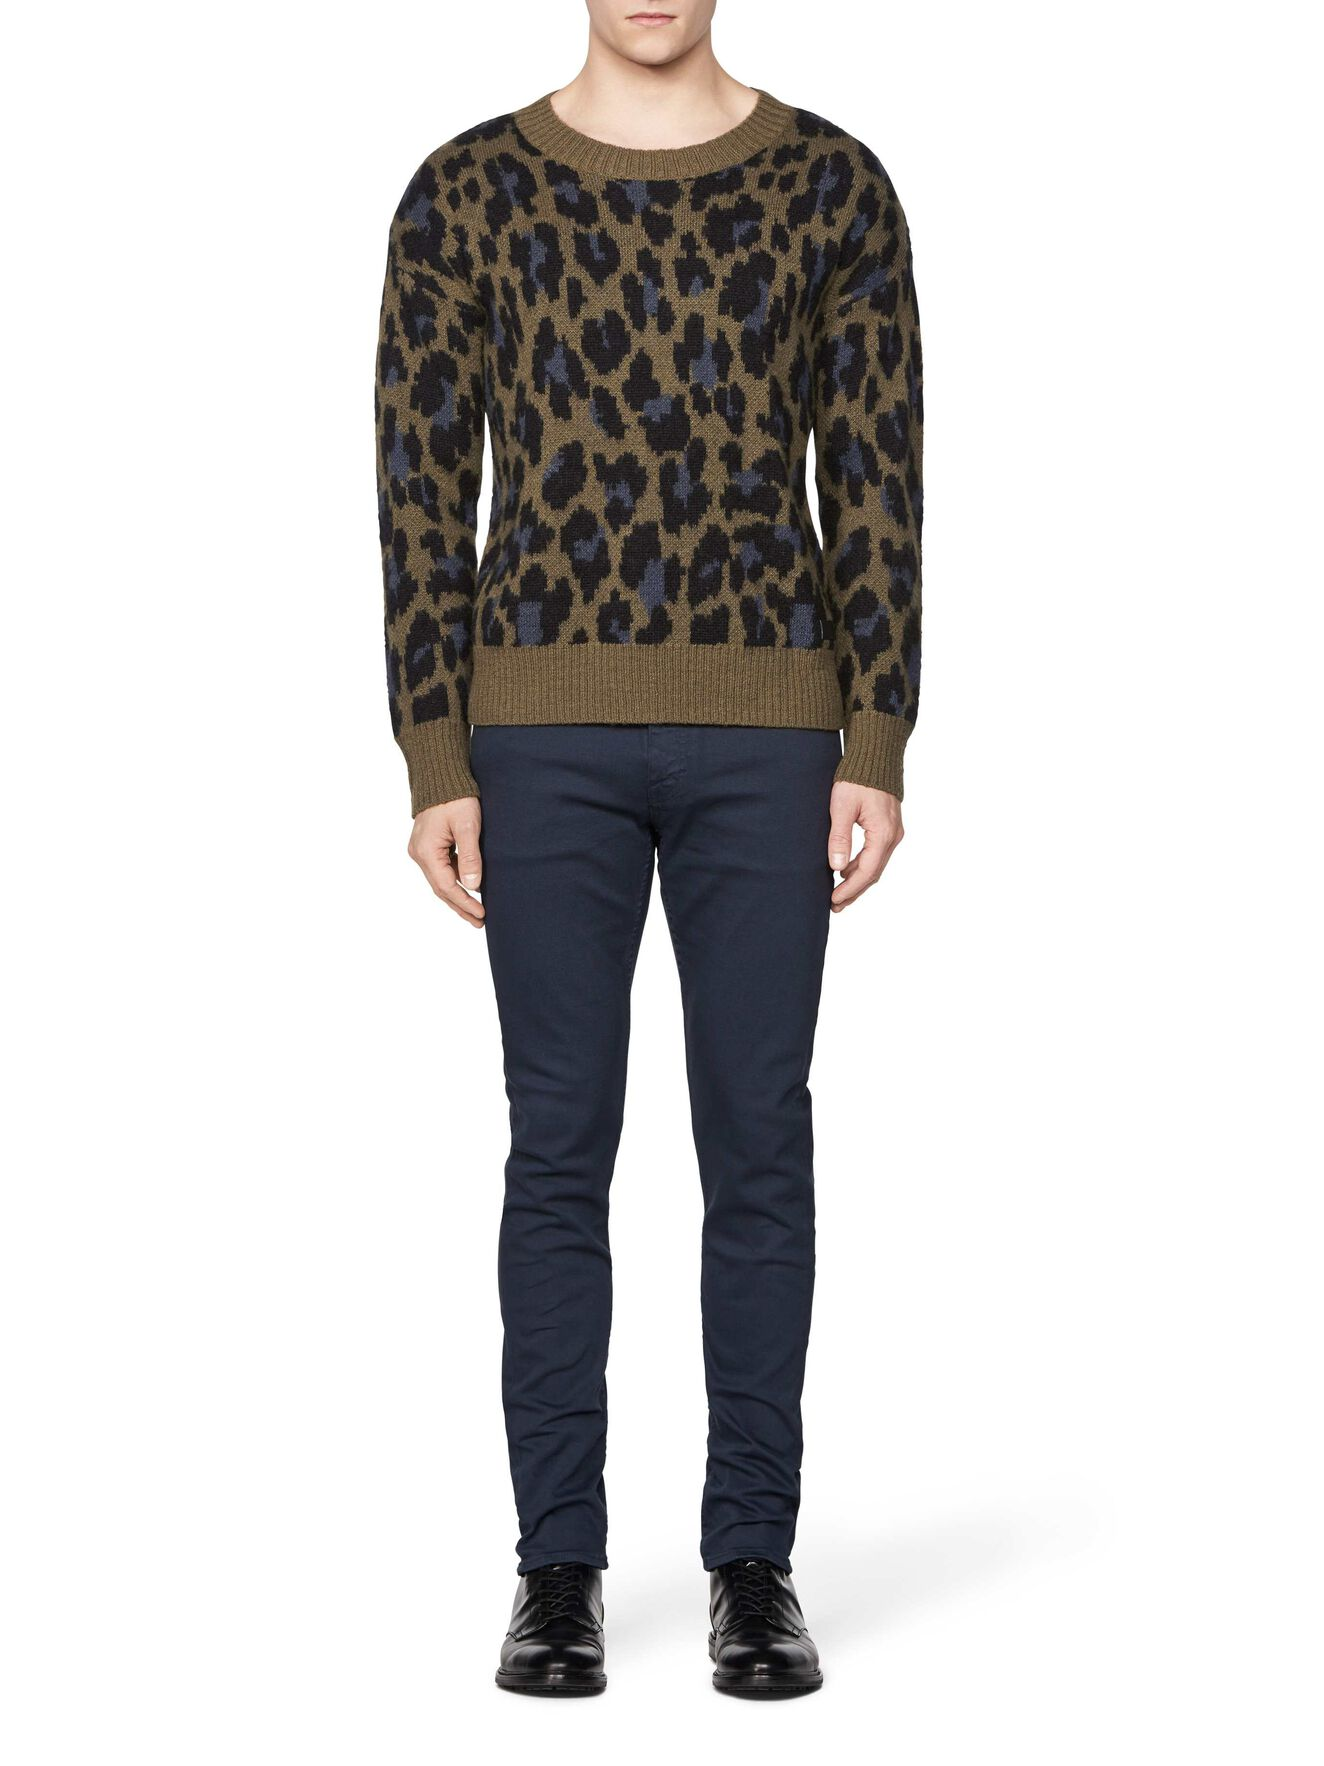 PETTER LEO PULLOVER in Pattern from Tiger of Sweden